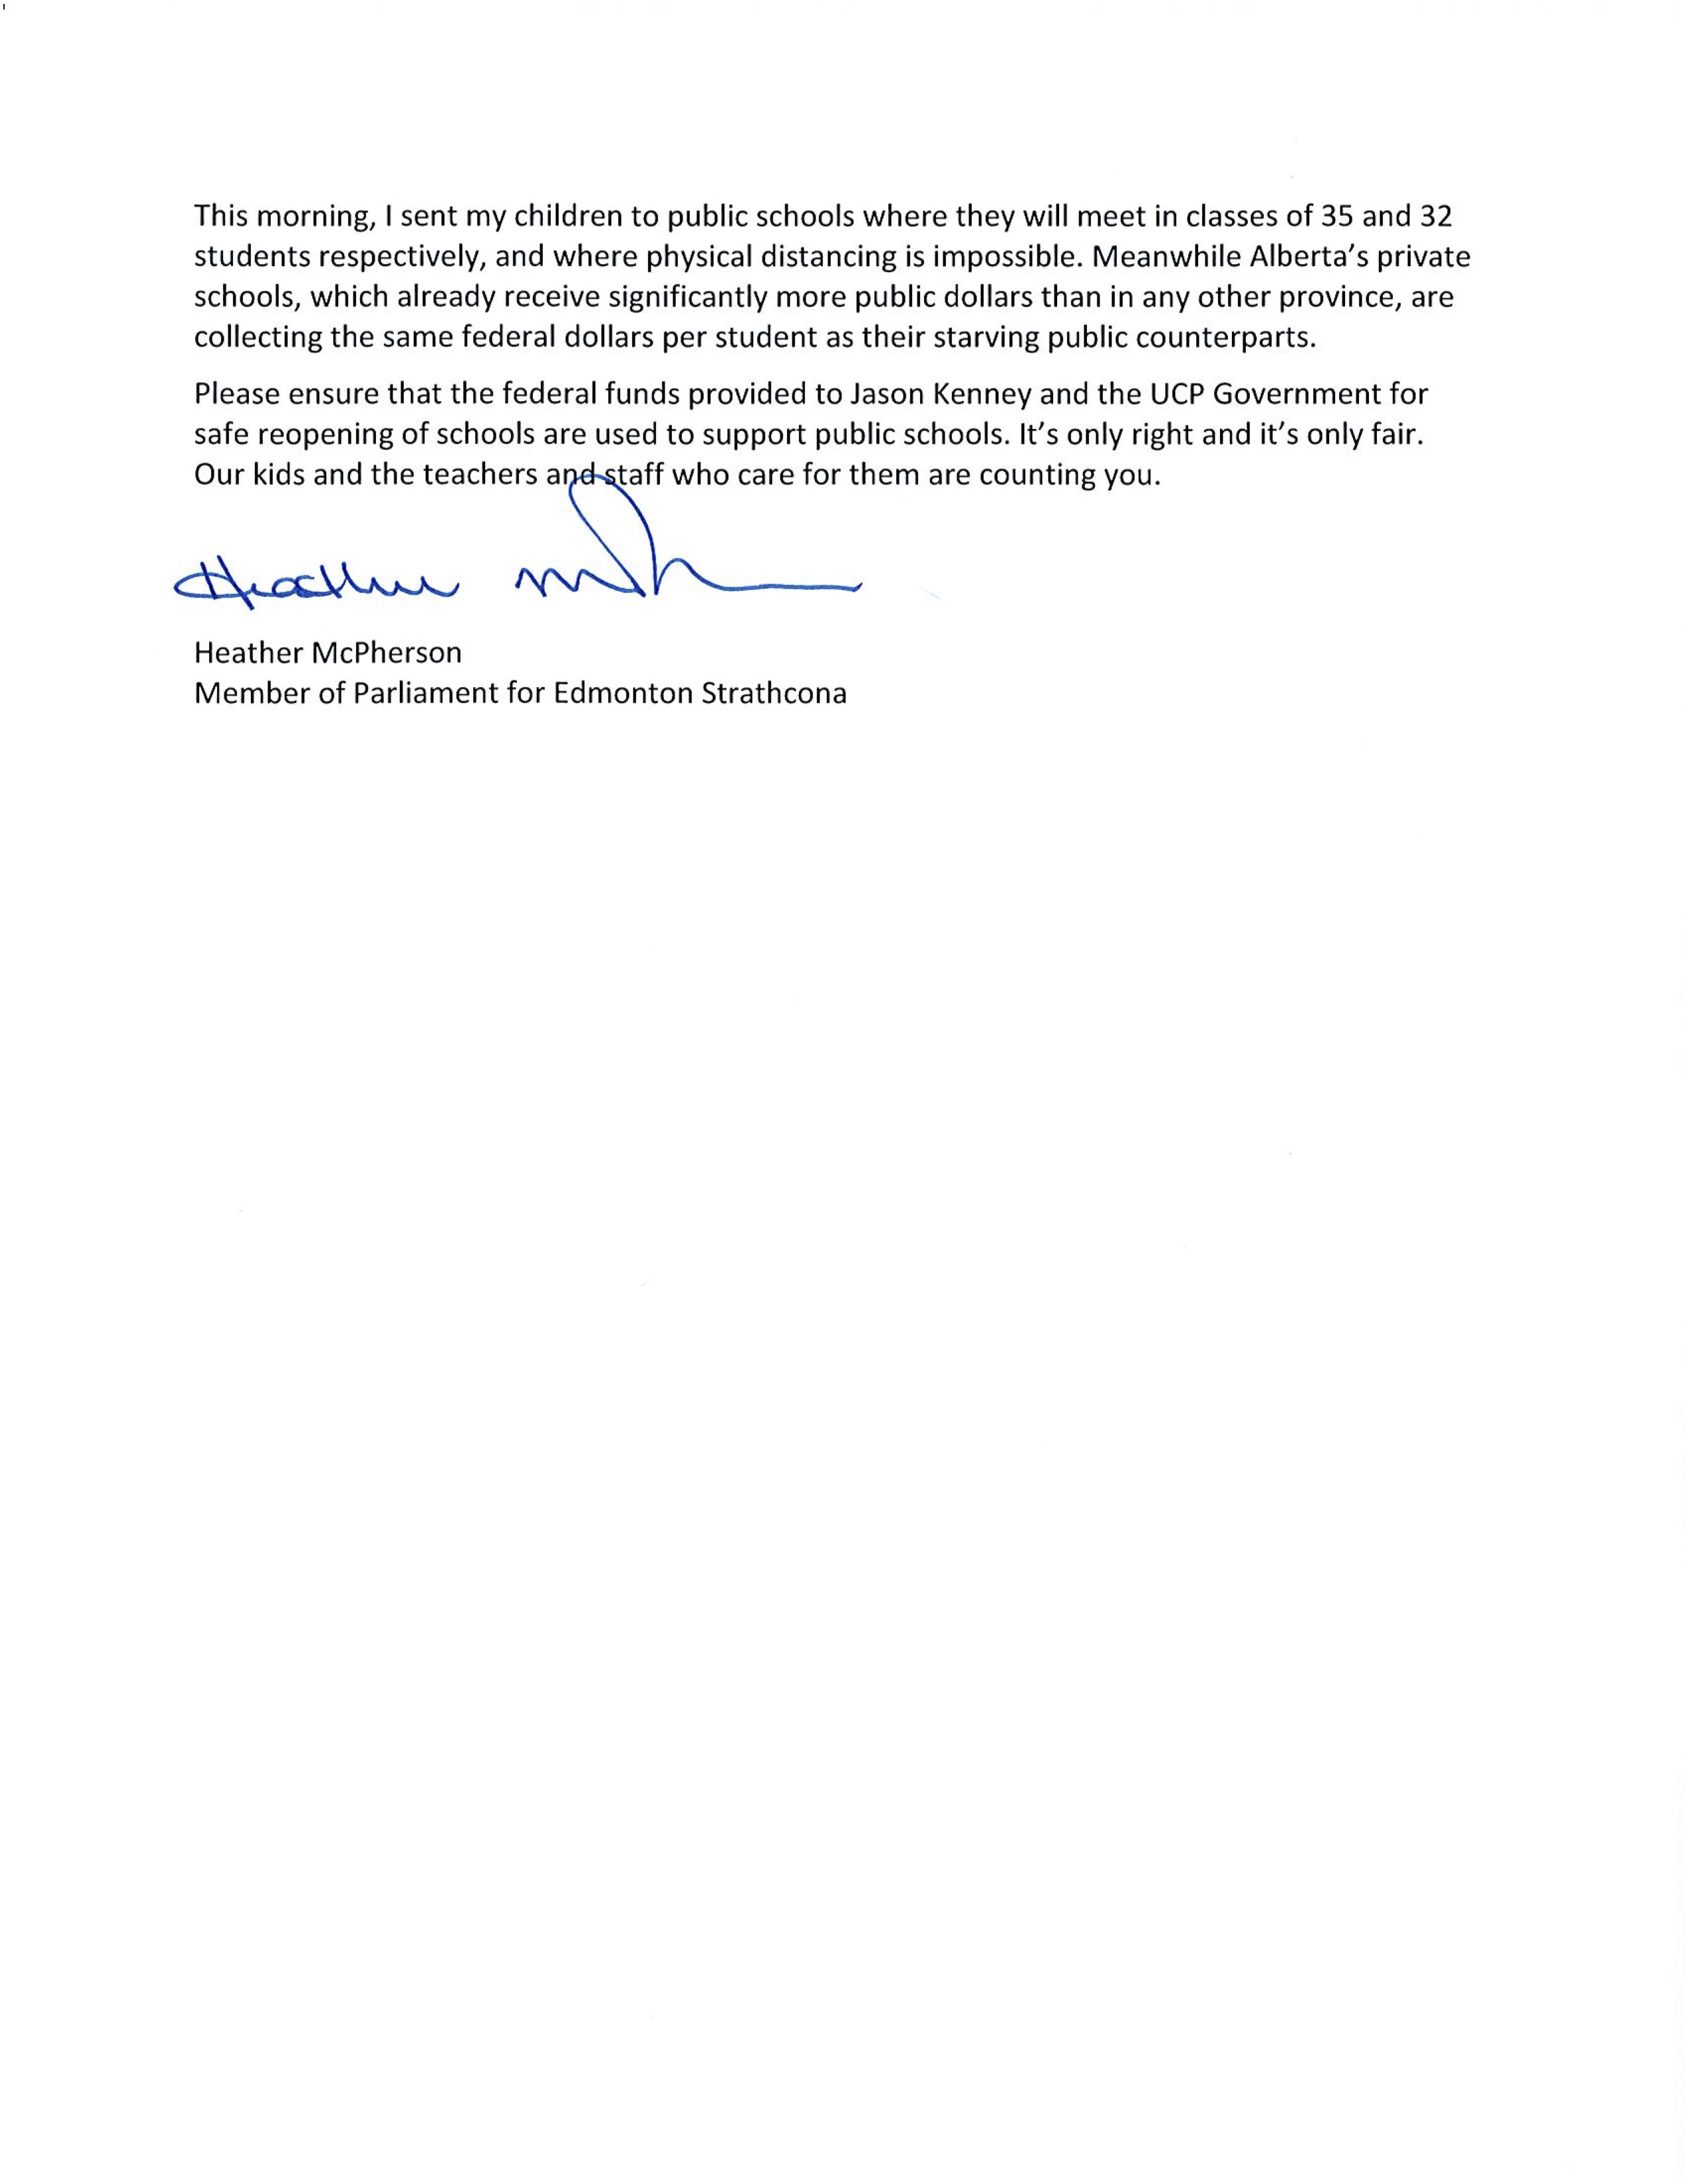 Letter to Prime Minister Trudeau Page 2